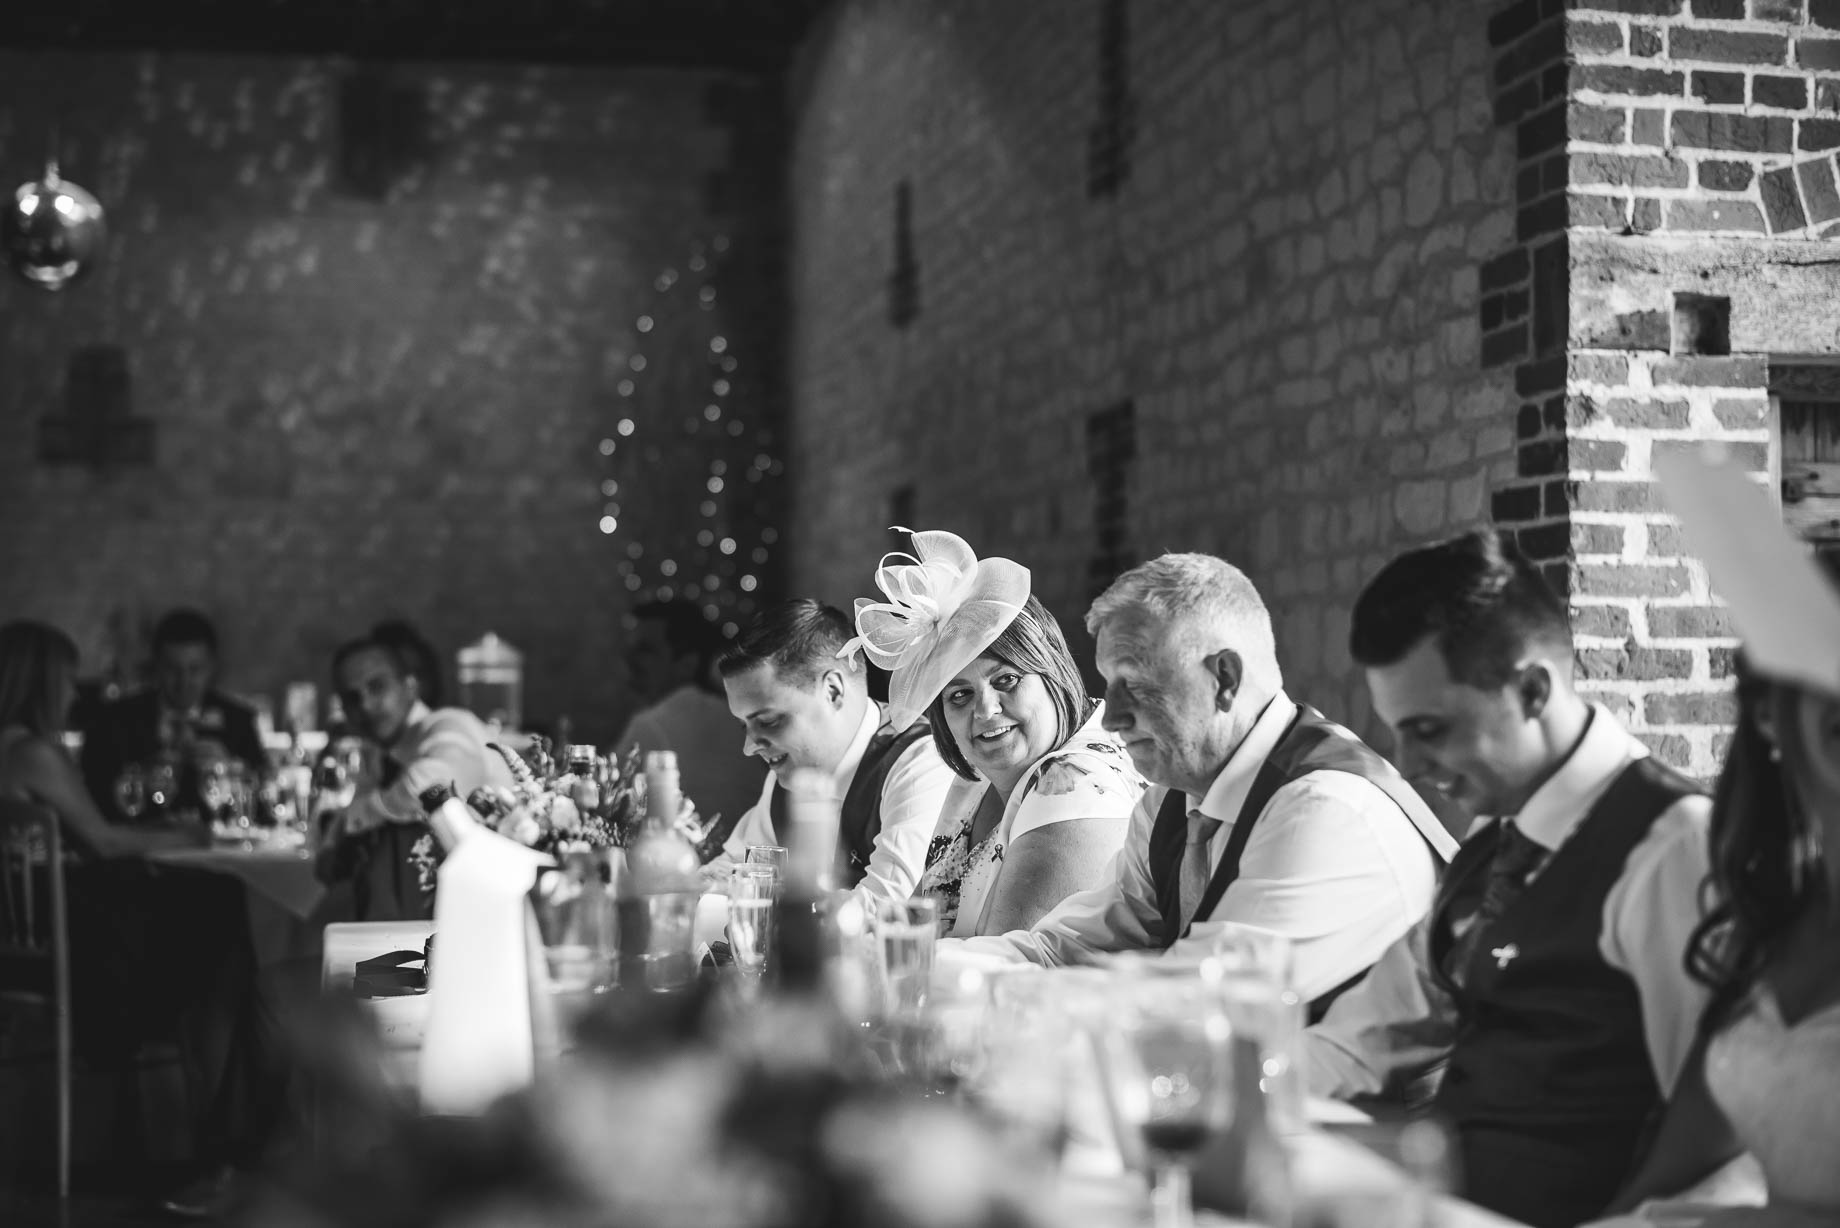 Bury Court Barn wedding photography - Guy Collier - Kirsty and Lewis (121 of 150)